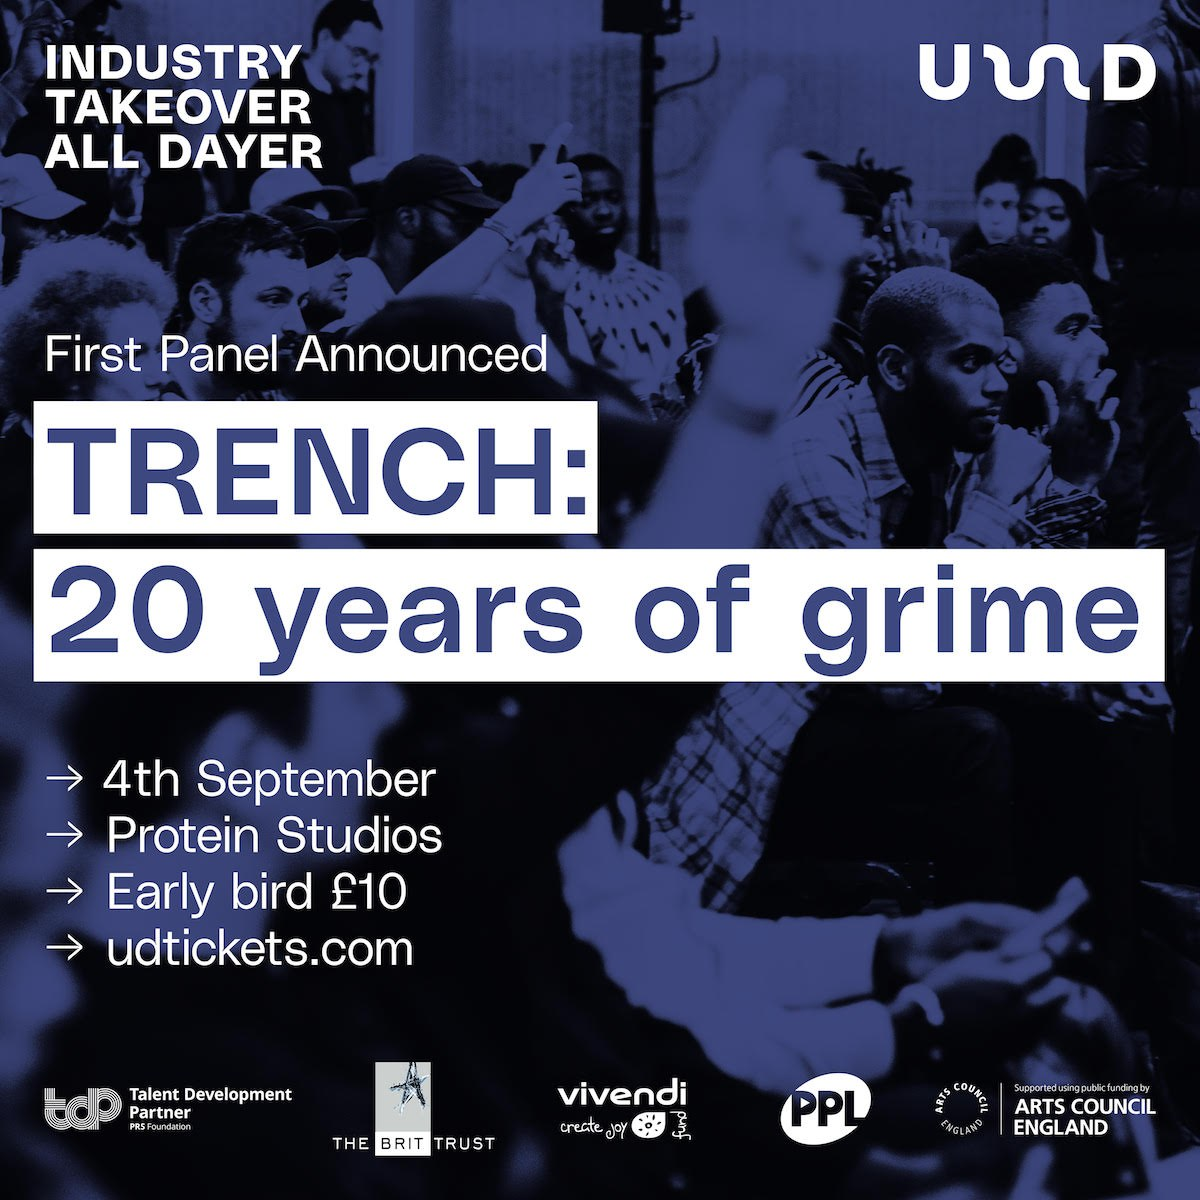 Celebrate 20 Years Of Grime With TRENCH x UD At The Next 'Industry Takeover All Dayer' In September!